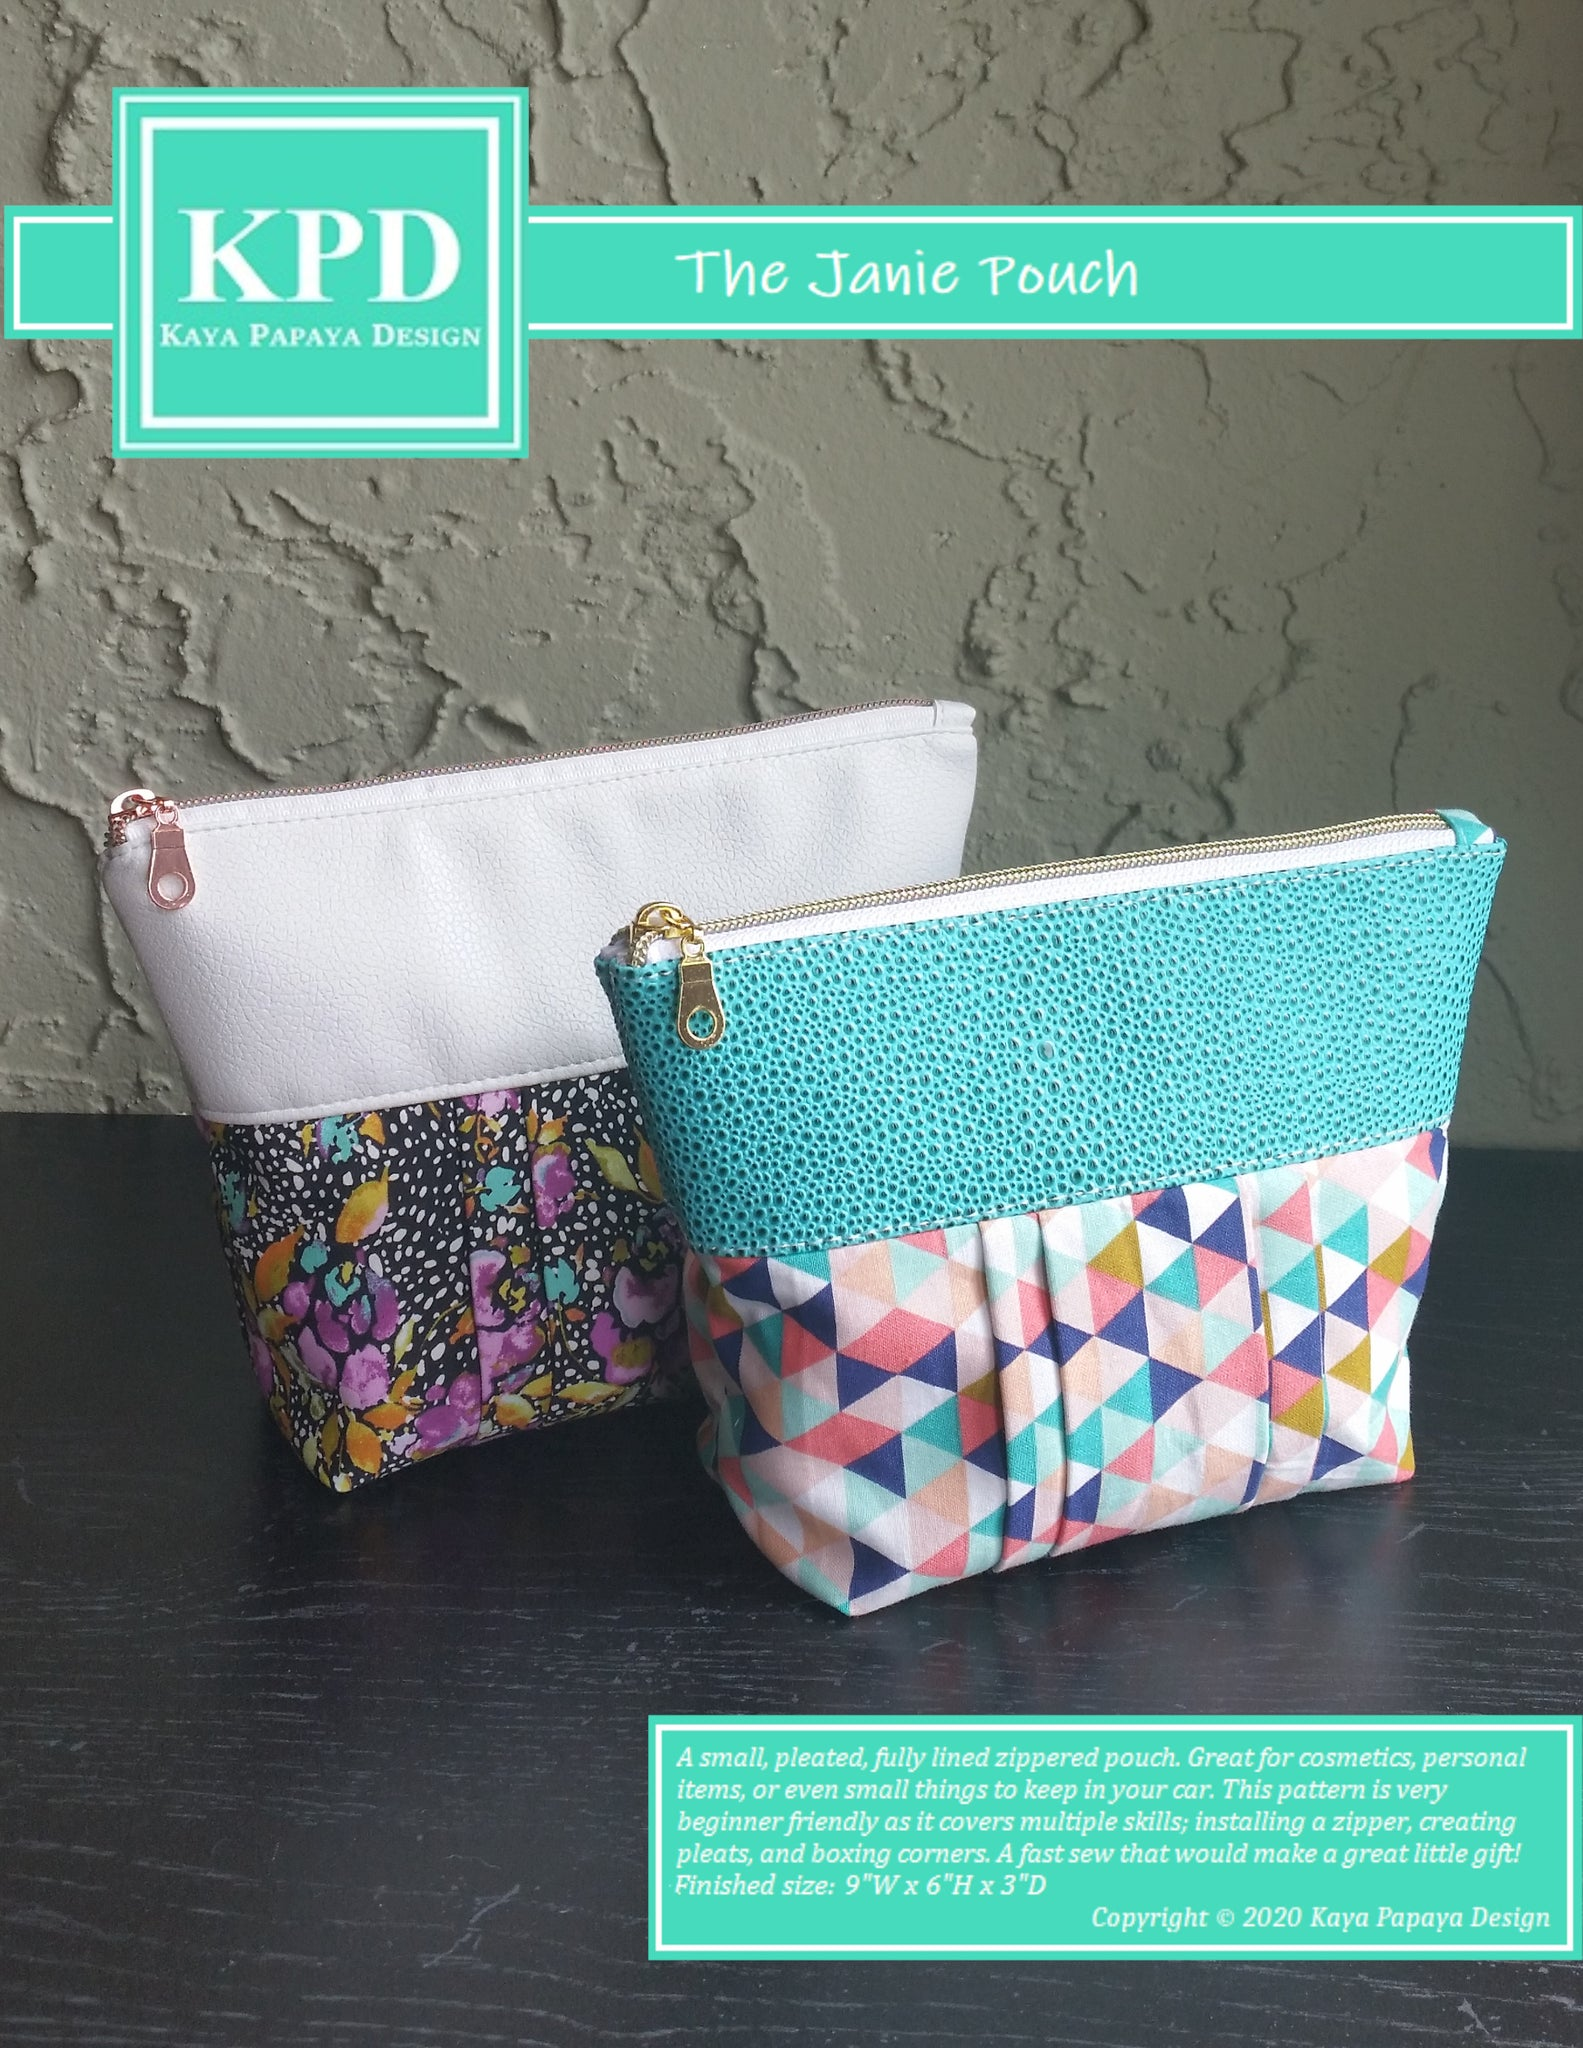 The Janie Pouch